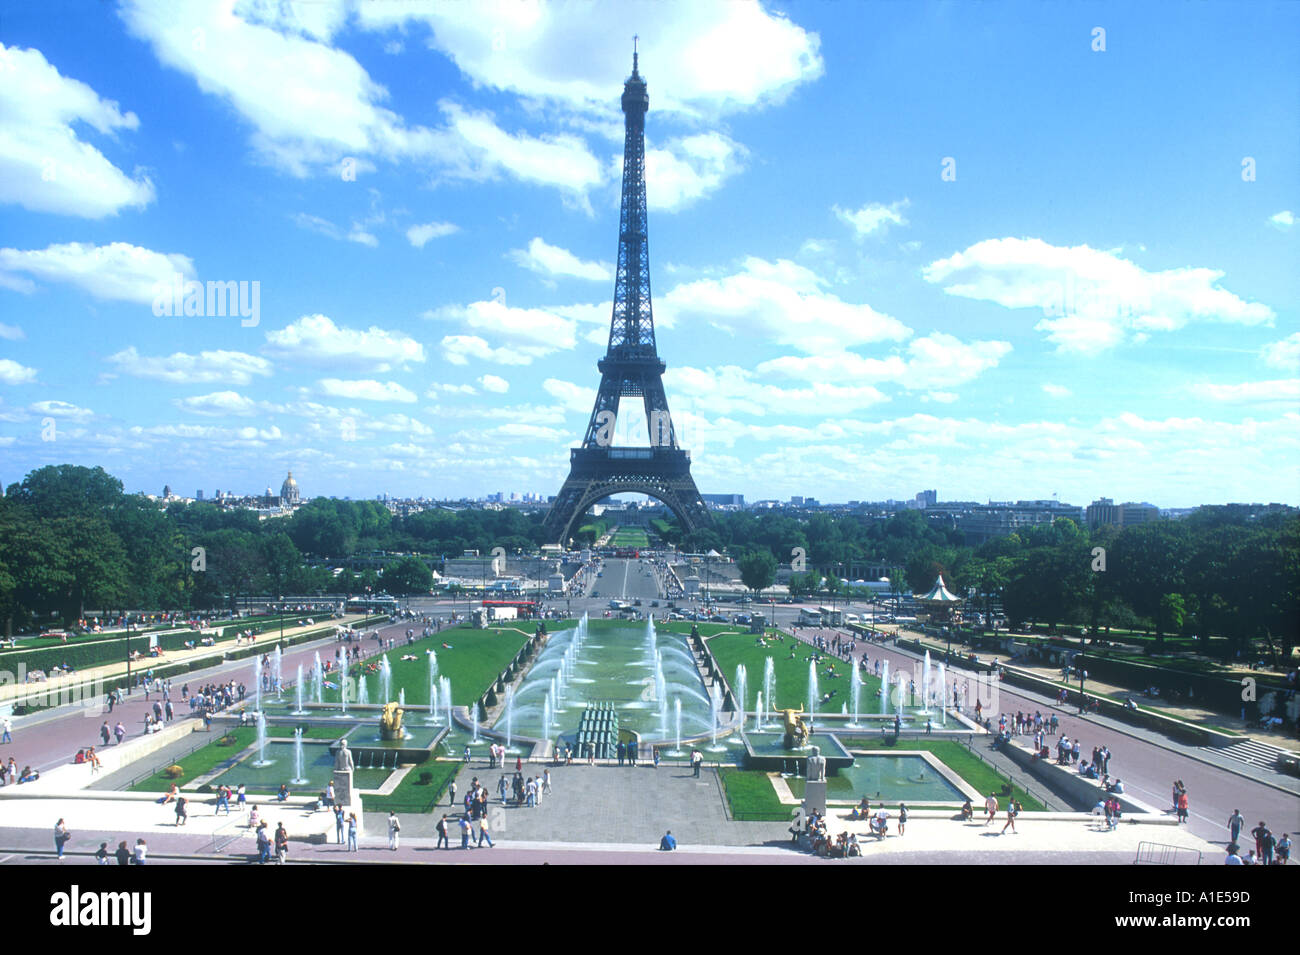 Eiffel Tower with fountains of the Trocadero Jardins Gardens Paris France Europe  Stock Photo